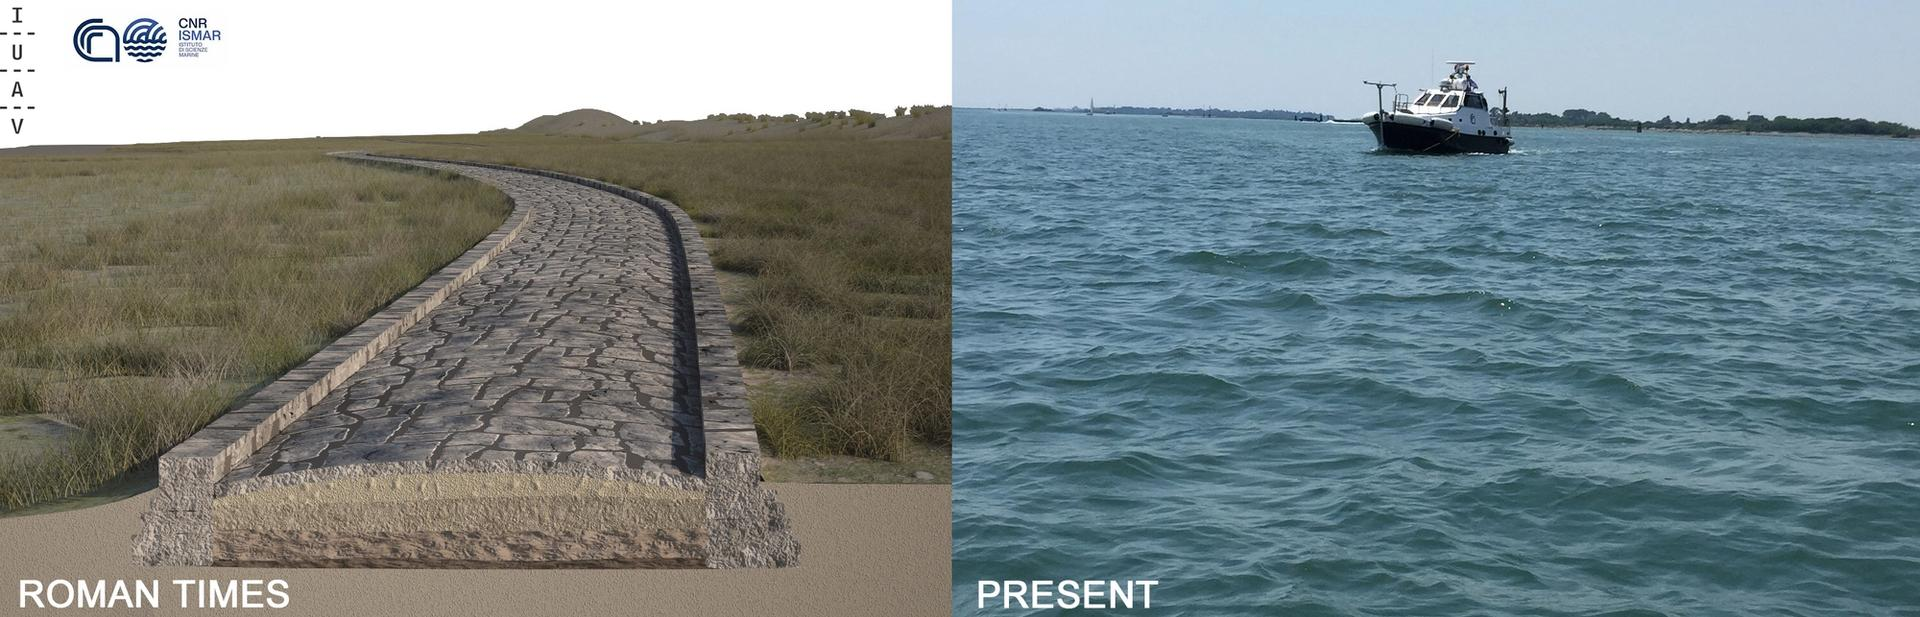 A rendering of the Roman Road (left) in the Treporti Channel of the Venice Lagoon, made on the basis of the multibeam data, and the same area now submerged Credit: Antonio Calandriello and Giuseppe D'Acunto (rendering), and Fantina Madricardo (photo)